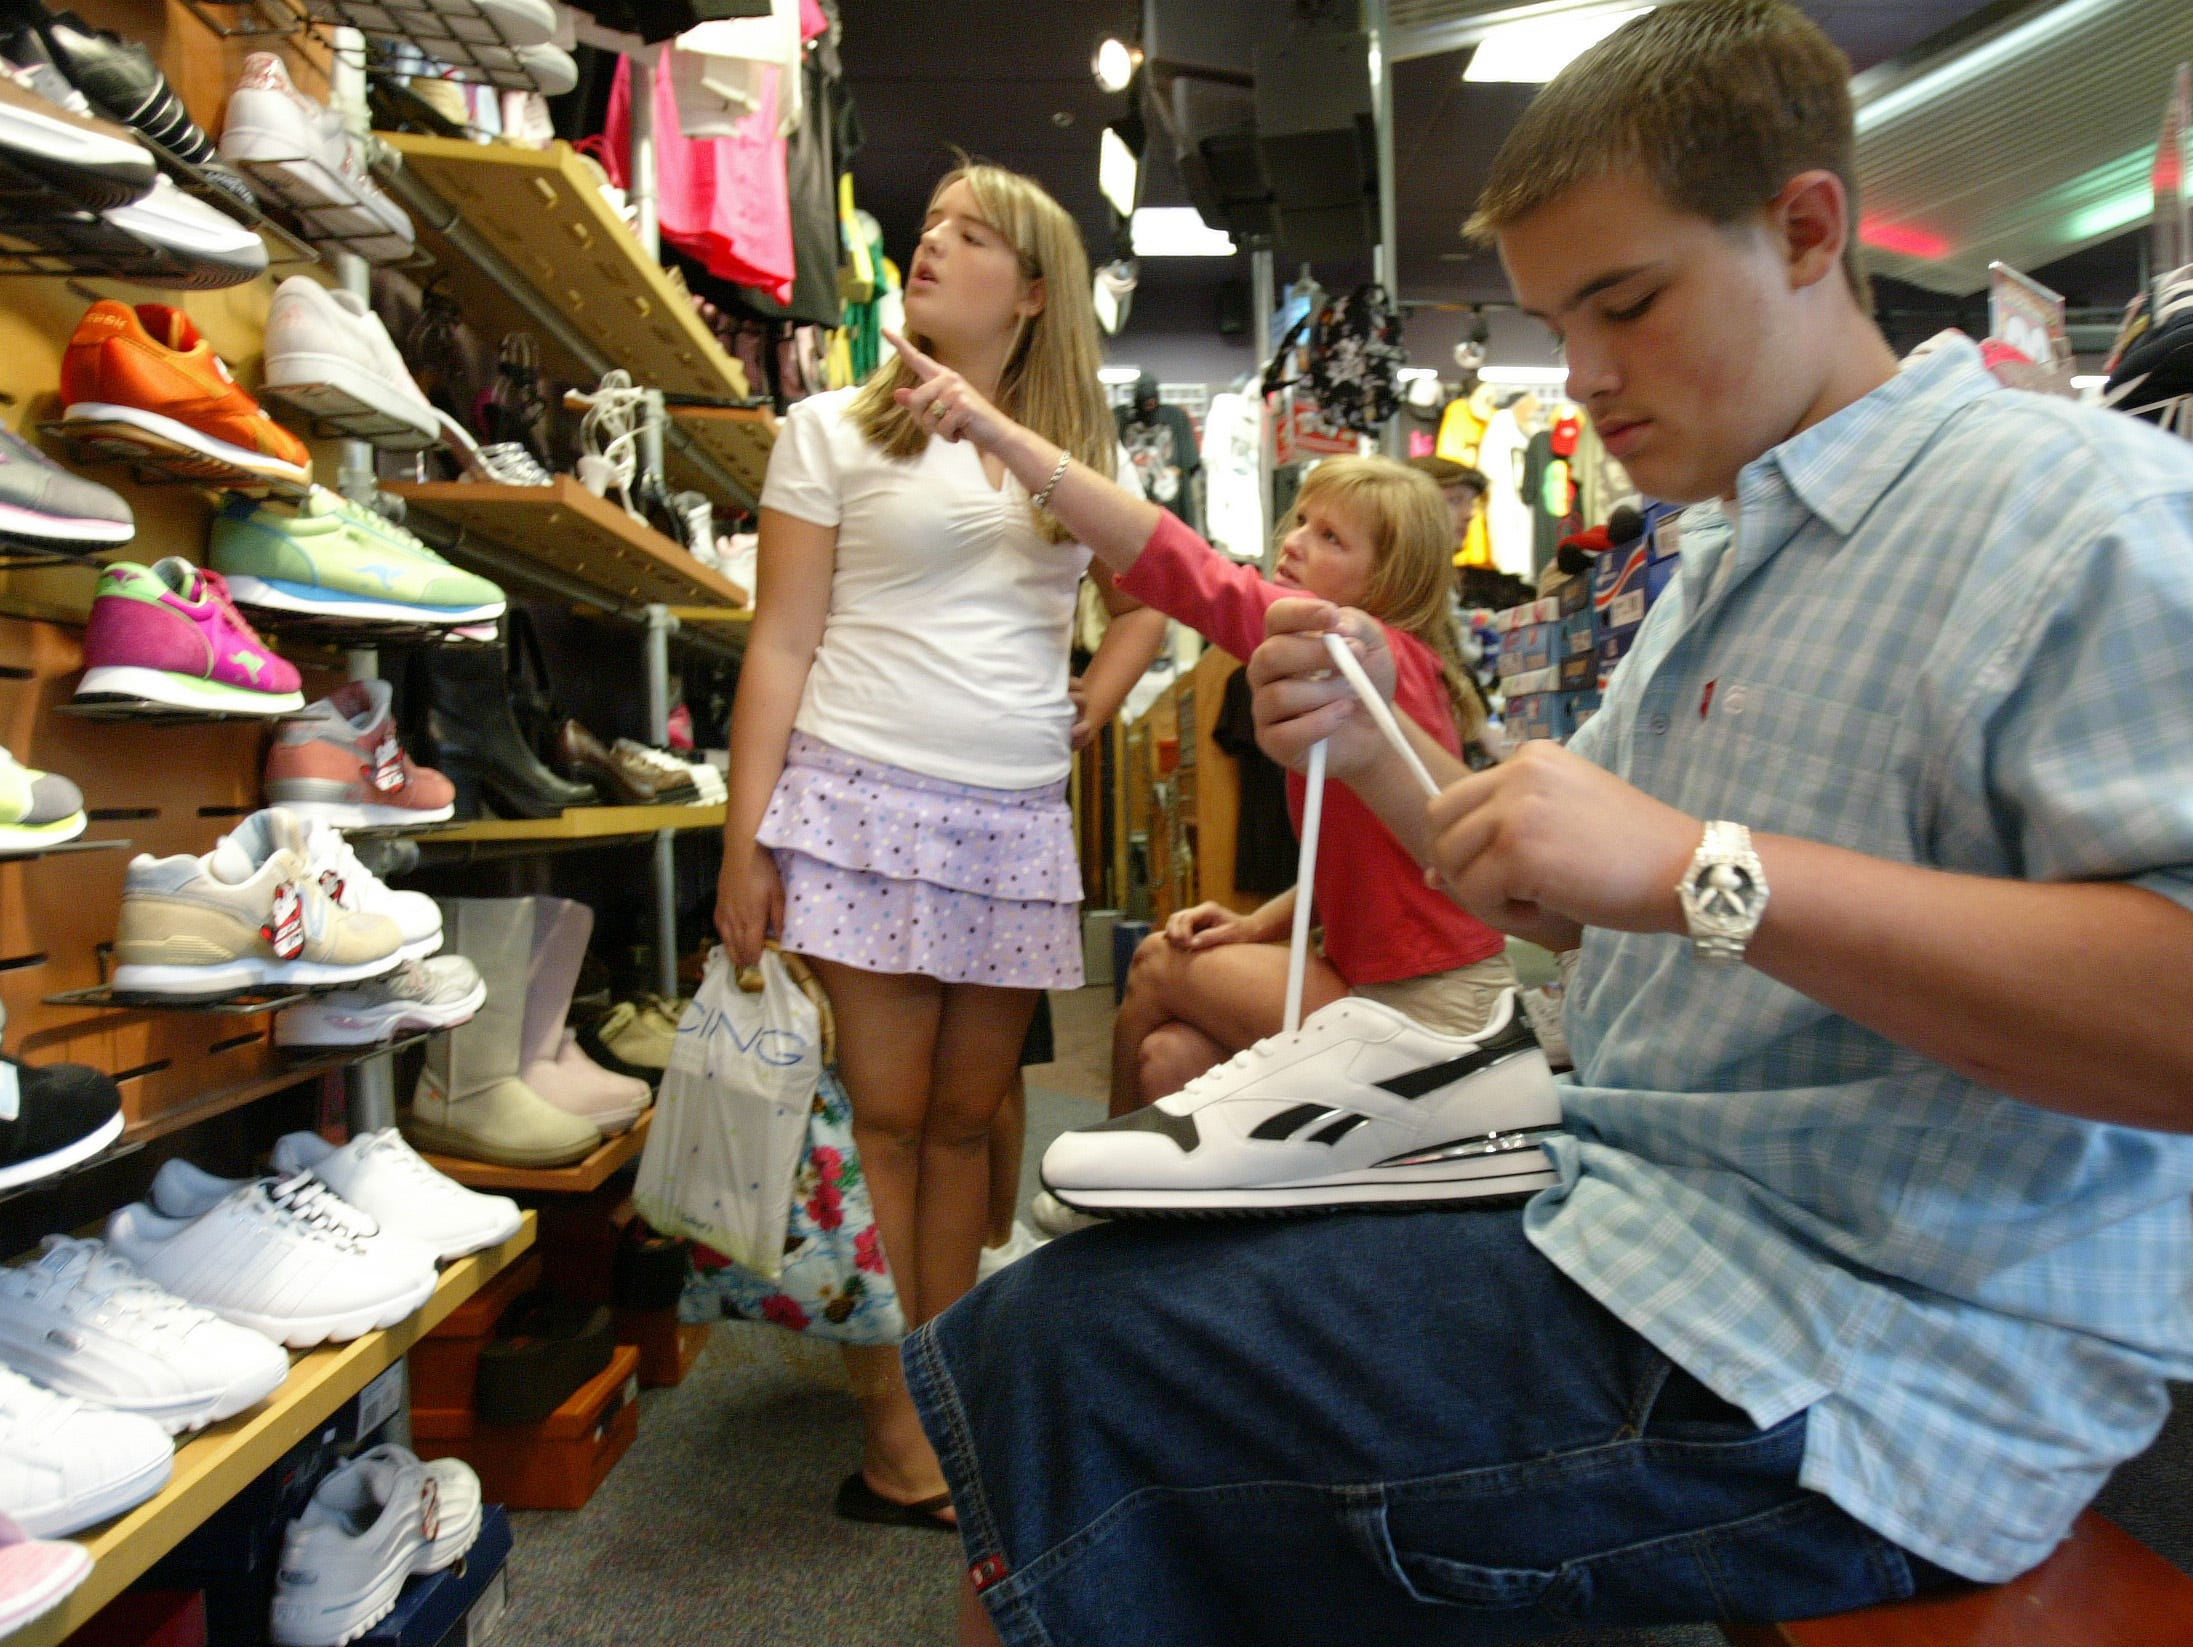 schoolbiz.CC#1752.JPG-----biz----Shopping for school shoes, Logan Kelley, 14, laces up his new tennis shoes while his mother Susan helps his sister Jeriel, 13, find a pair of shoes. The Kelleys are from Loudon and were shopping on Saturday at Journeys shoe store in West Town Mall.